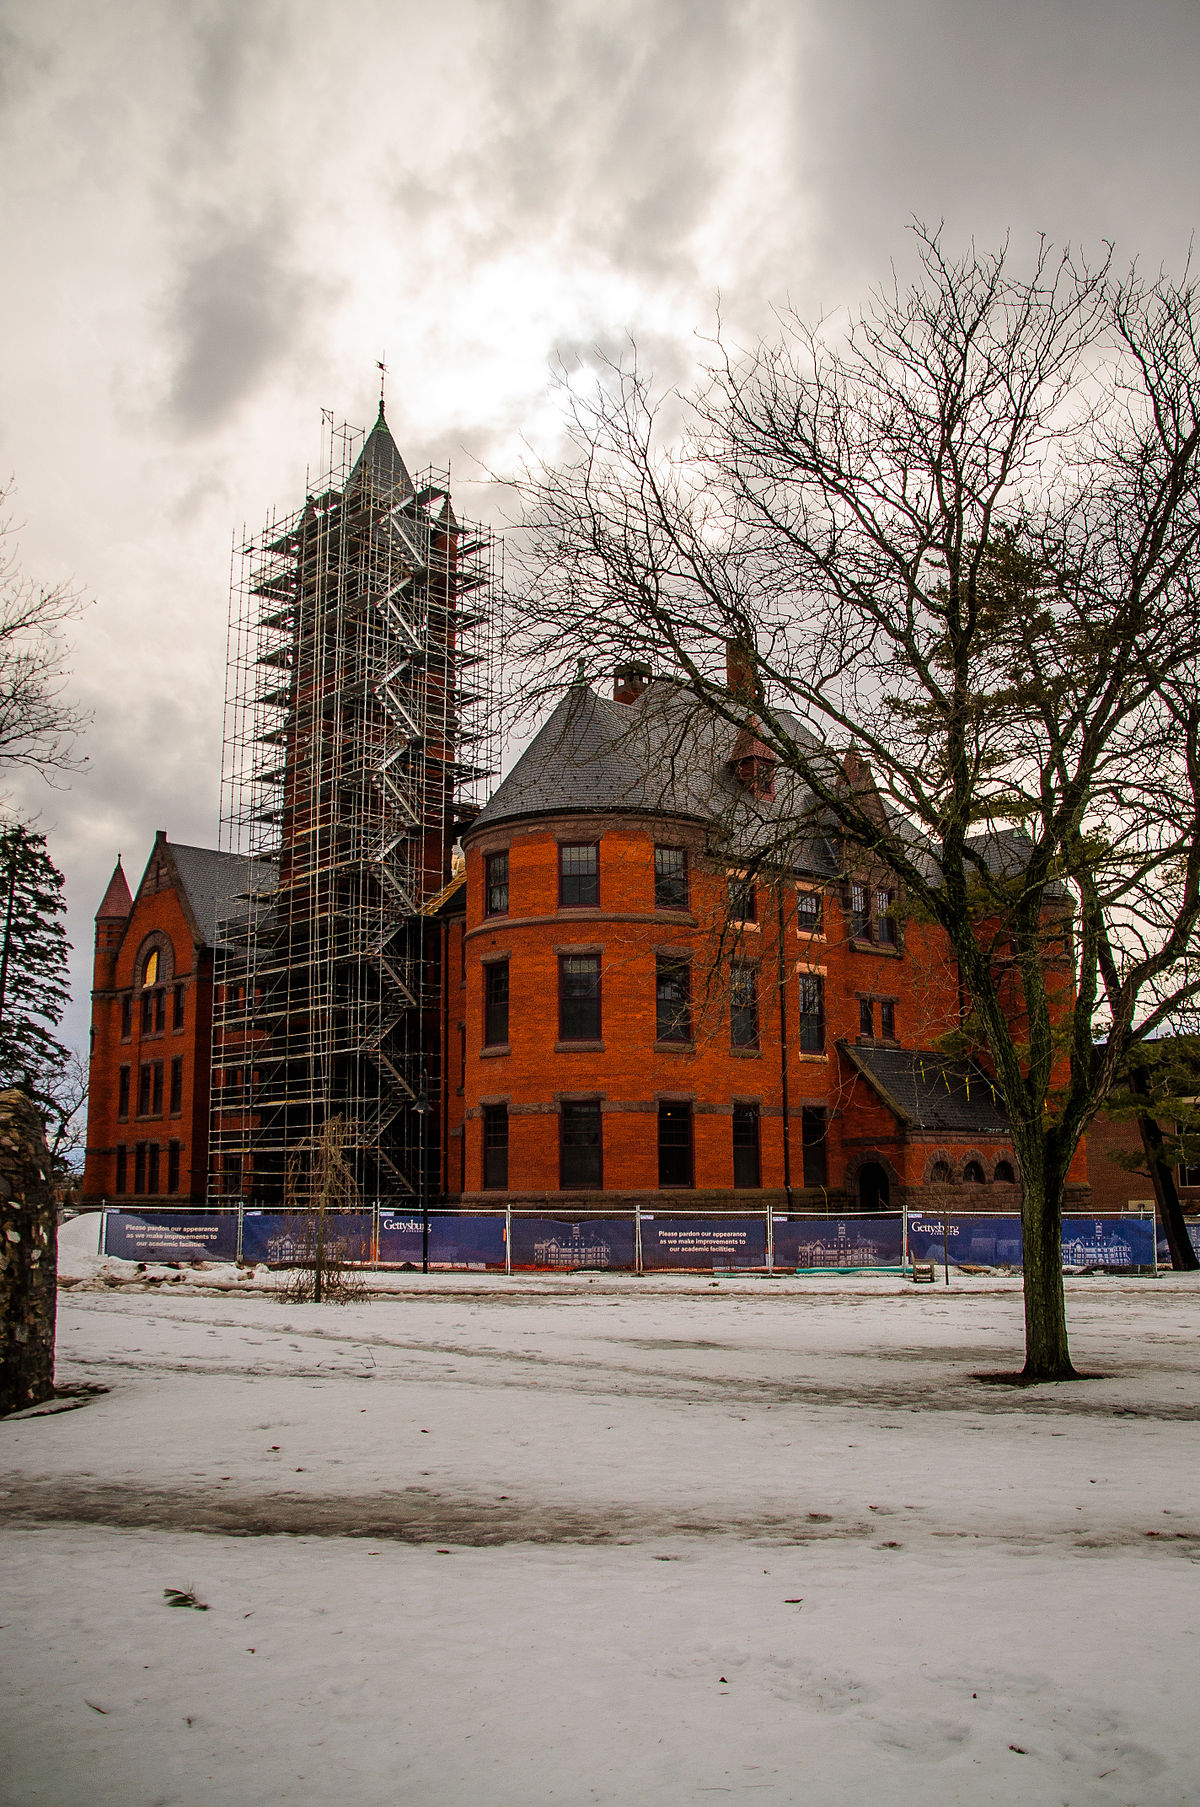 1200px-Glatfelter_Hall_Renovation_building.jpg